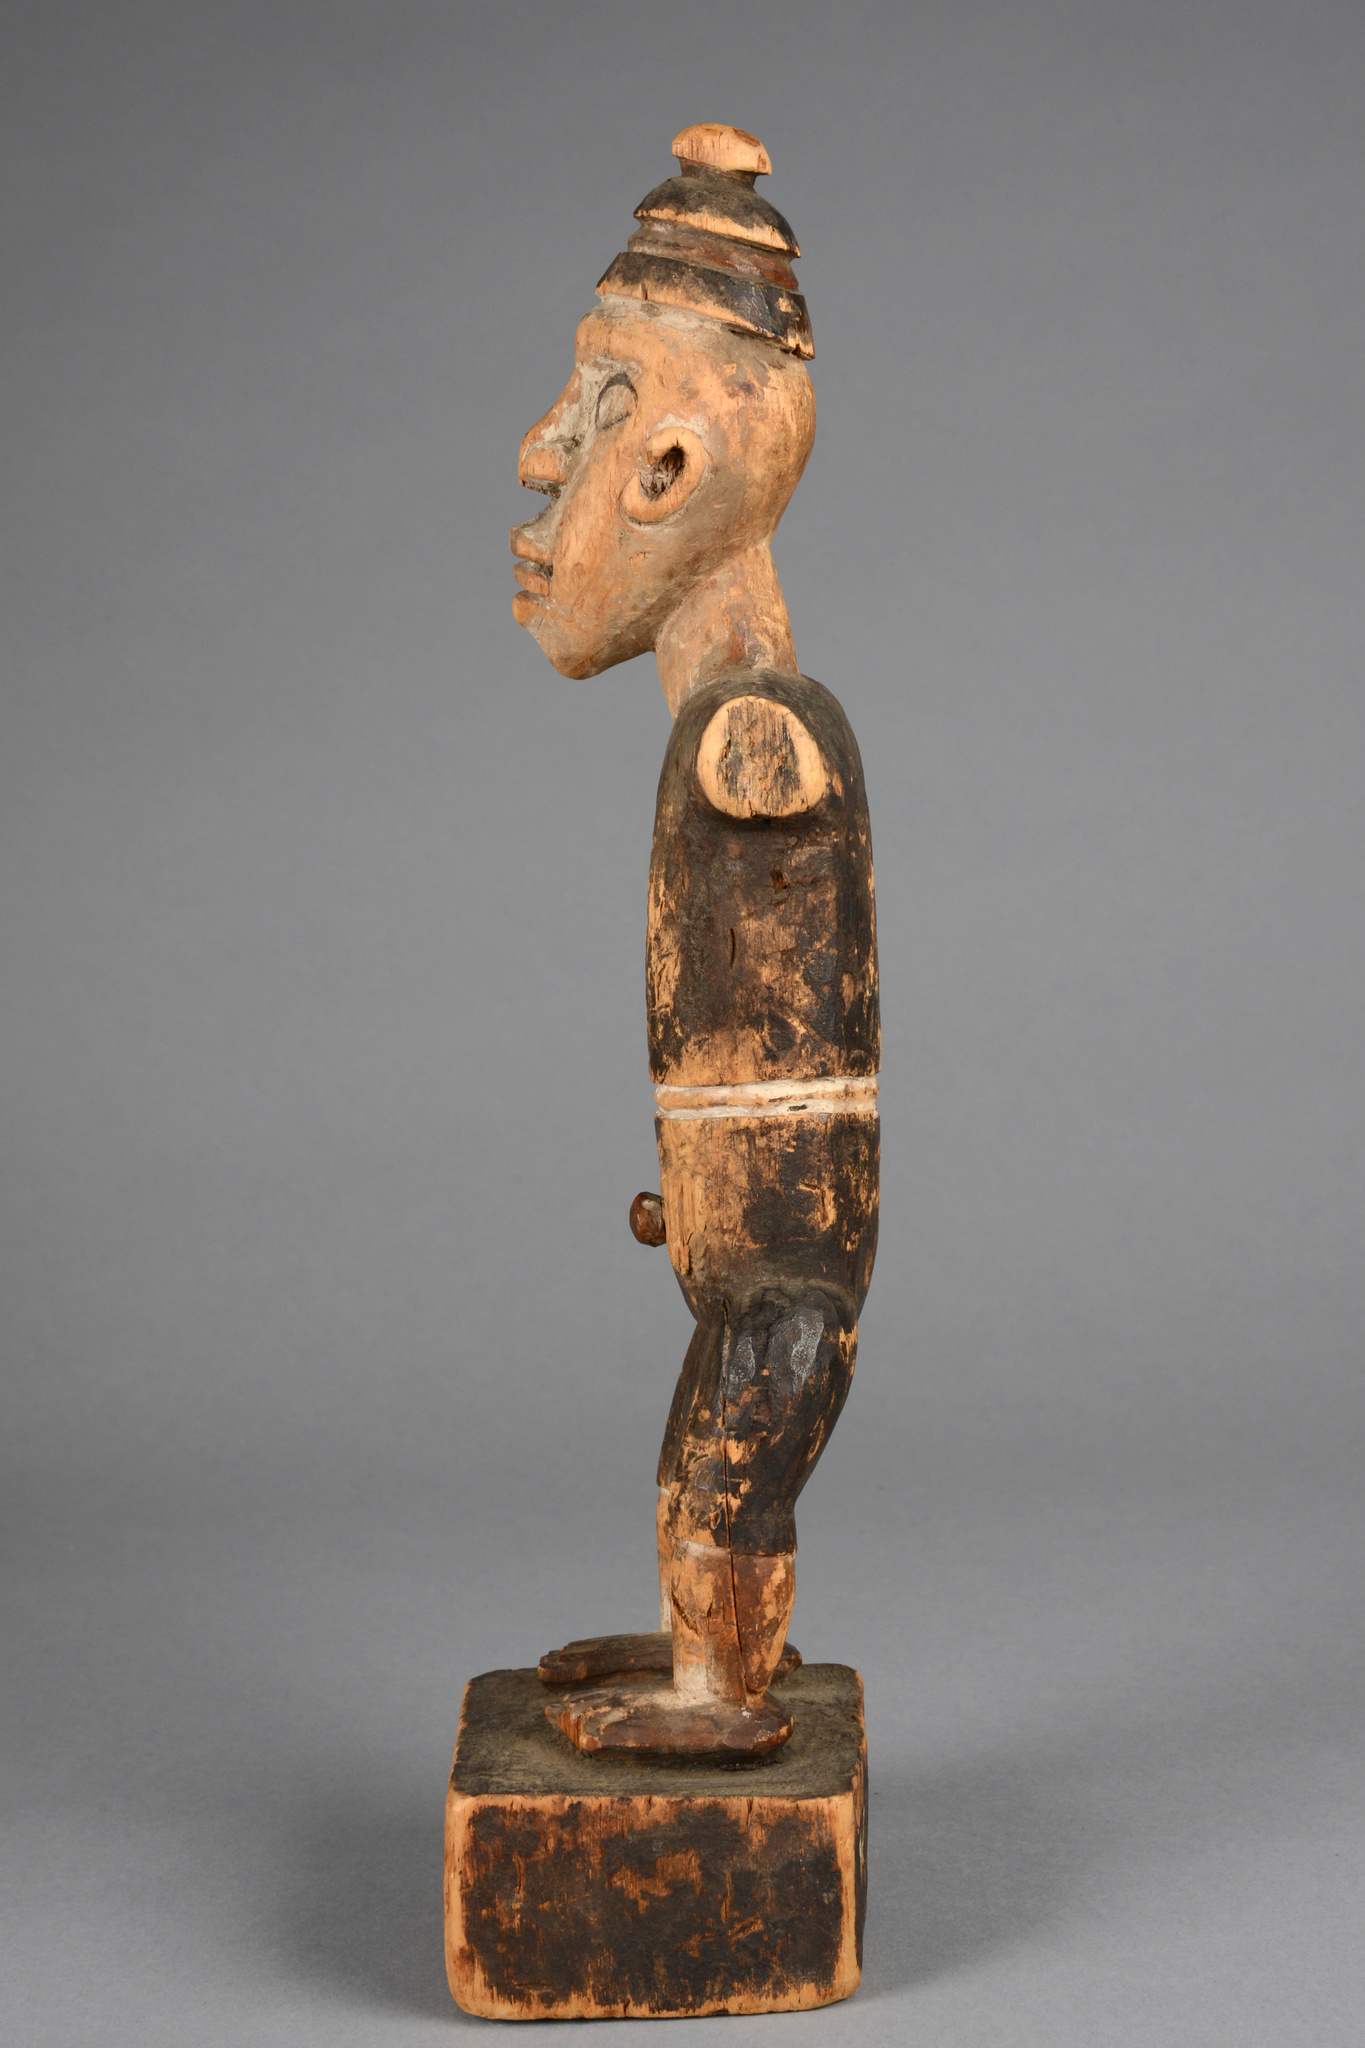 Standing figure in colon style, 1880/90